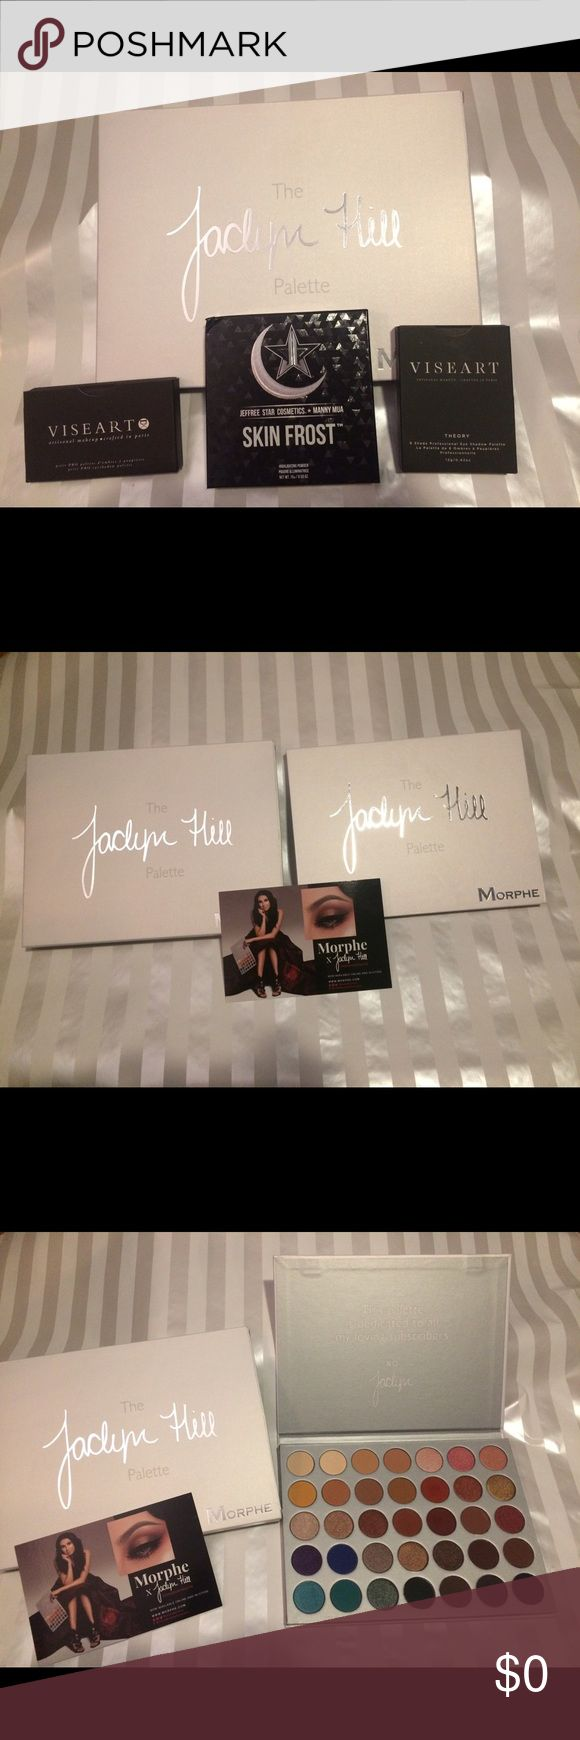 Not for sale just showing Bundle trade for my morphe and jackalyn hill pallet 2 visart pallets in theory and petite pro in minx and Jeffry star and manny mua skin frost in eclipse for abh Mario pallet violet voss pro pallet and Kylie holiday pallet and farsali unicorn elexir Makeup